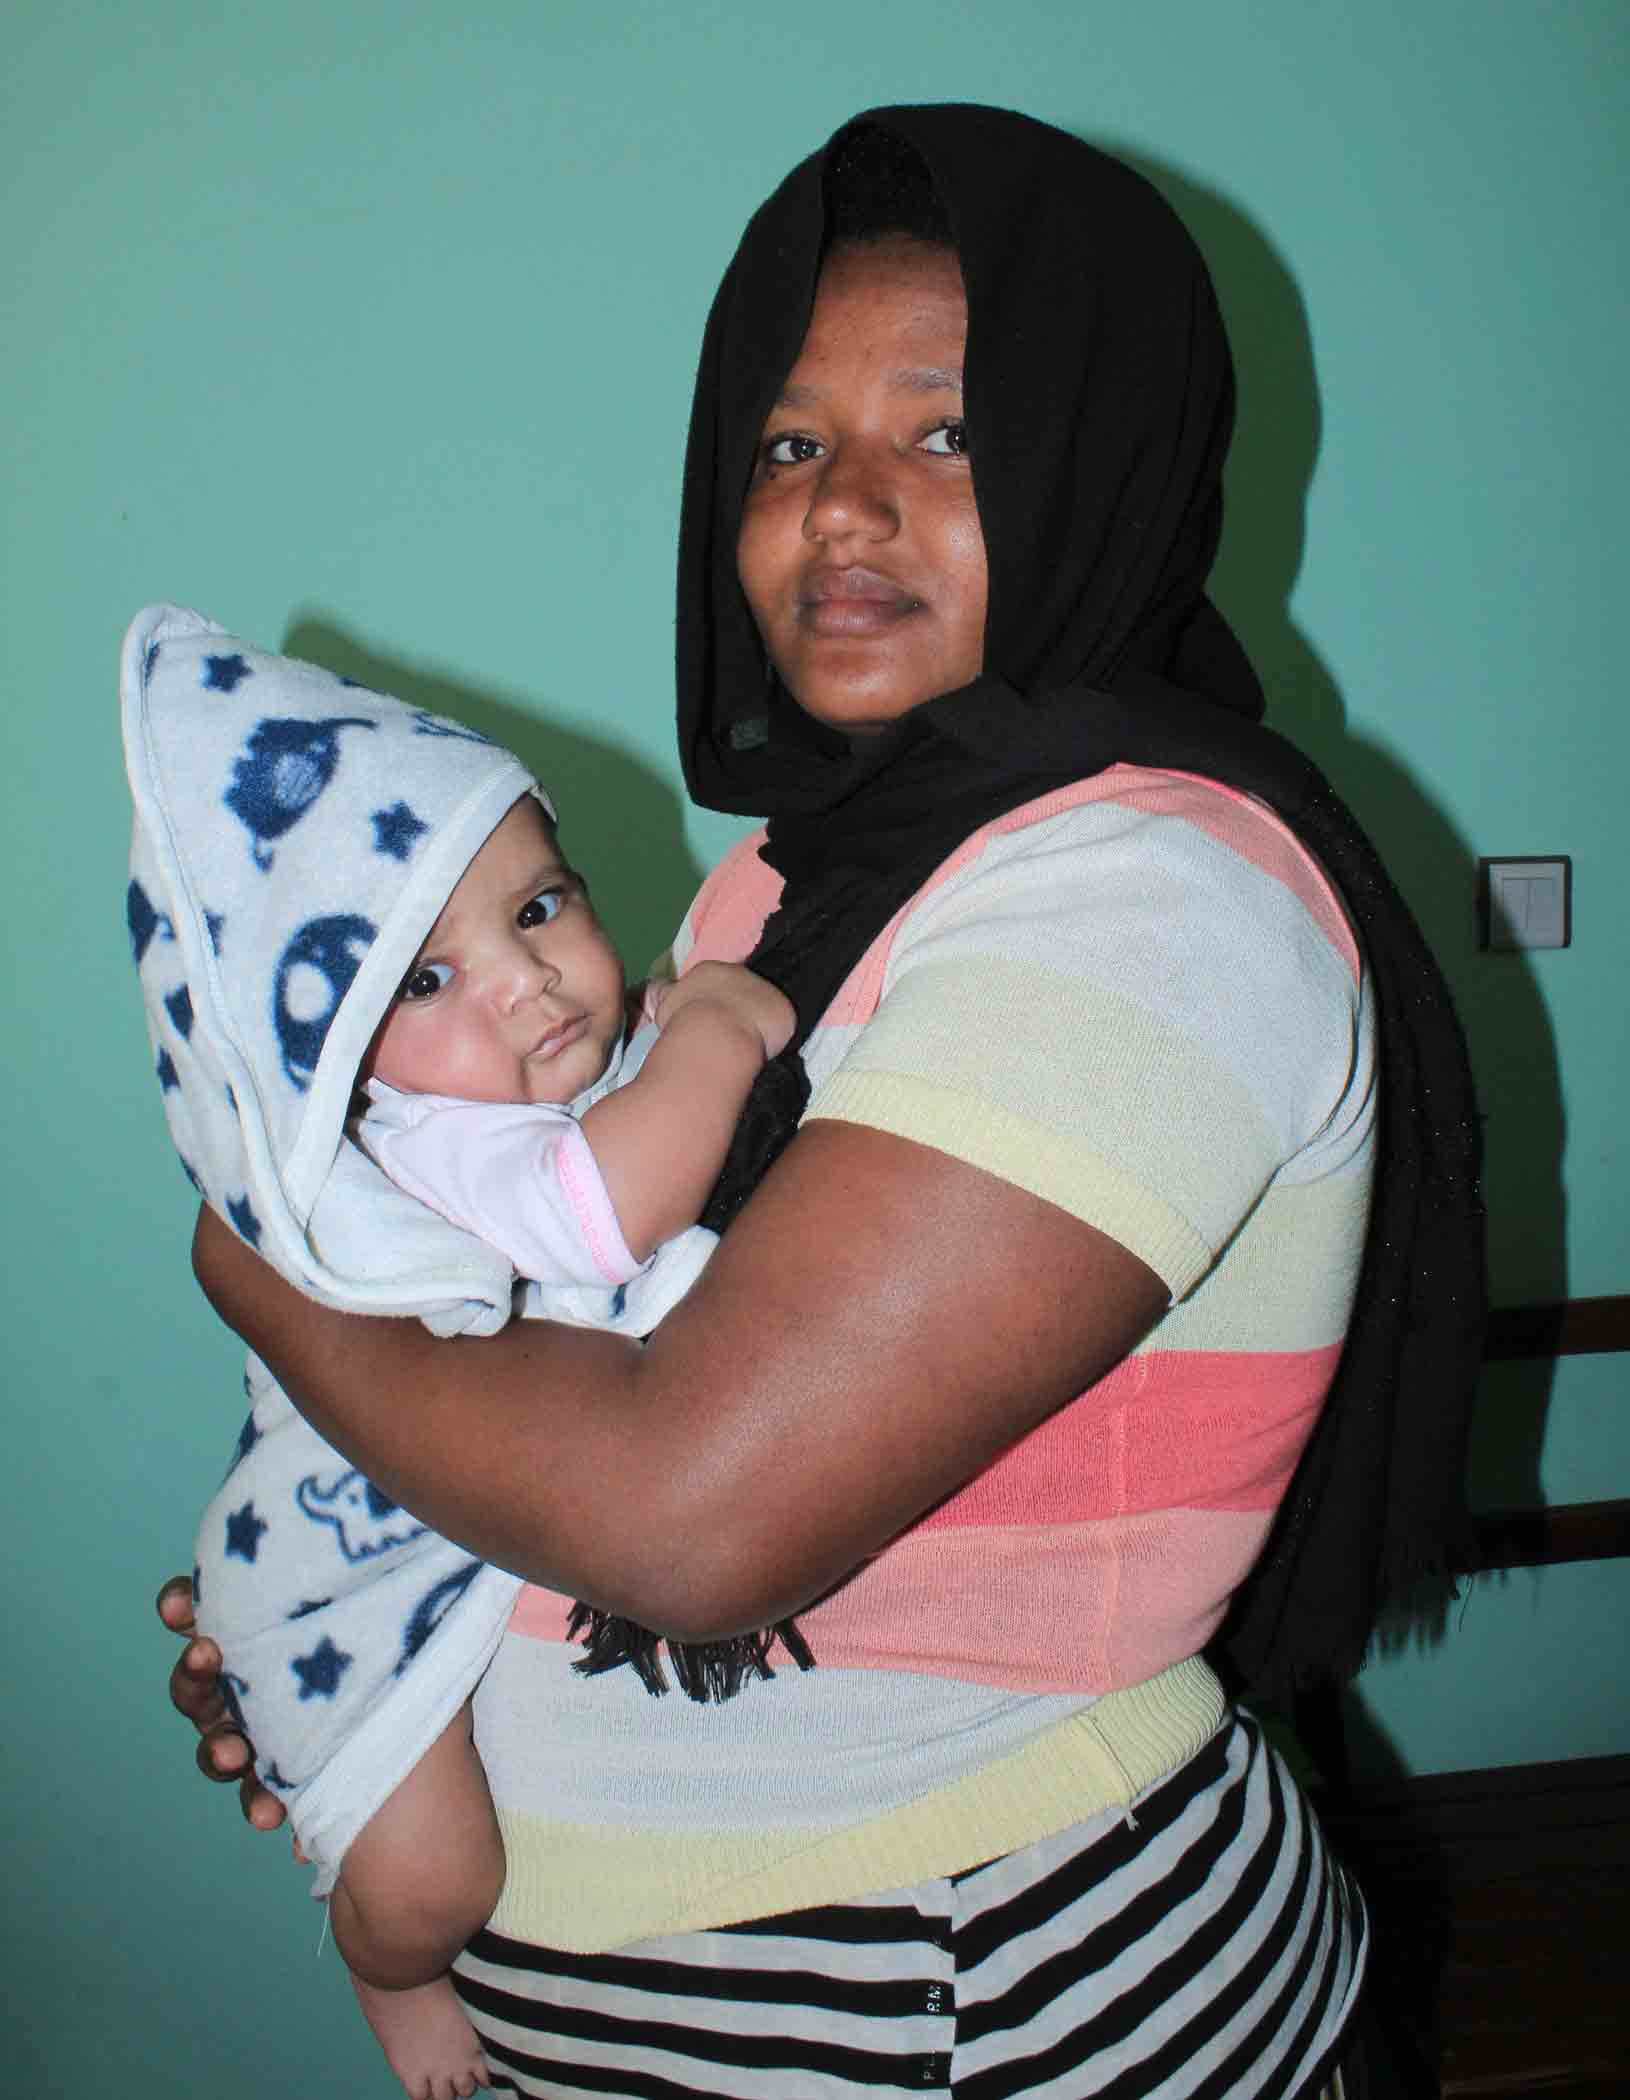 ETHIOPIA | APR. 12, 2021 — Christian Mother Recently Widowed